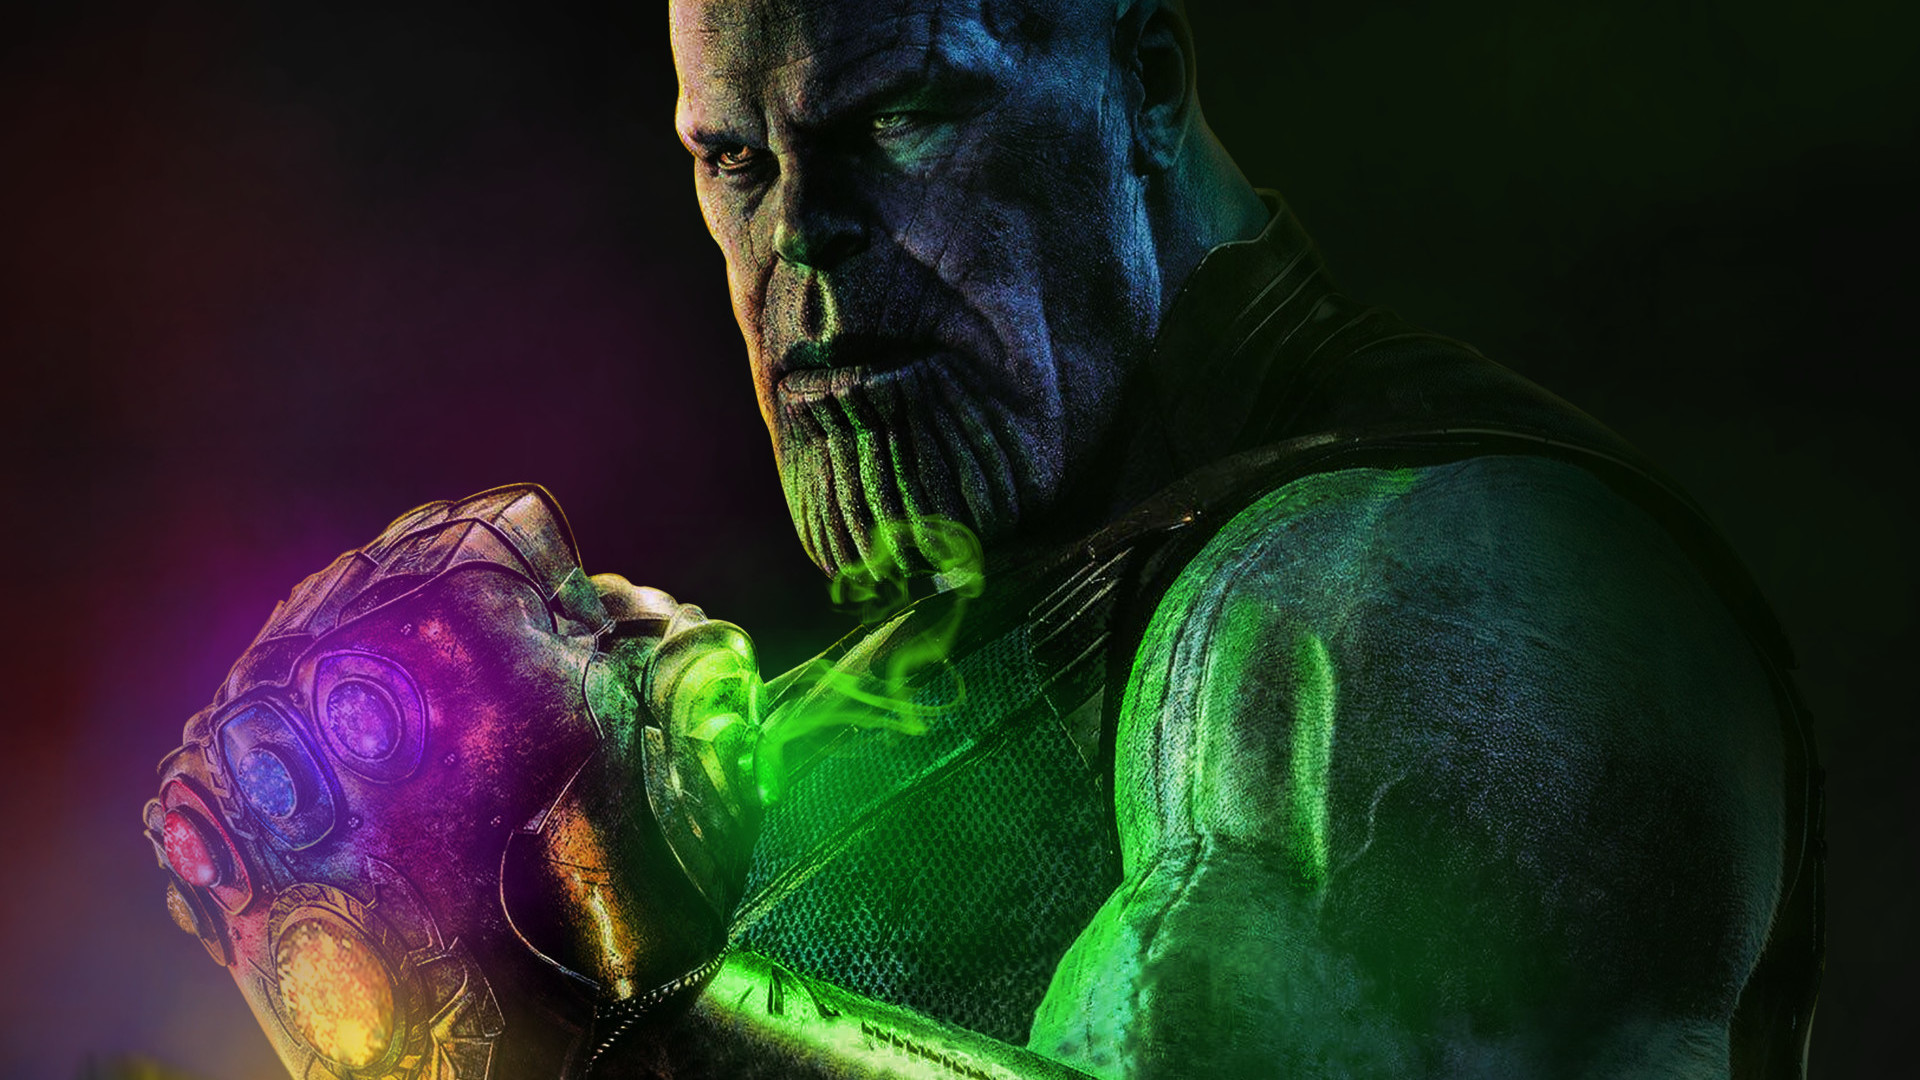 Thanos Artwork With Infinity Stone, Full HD Wallpaper